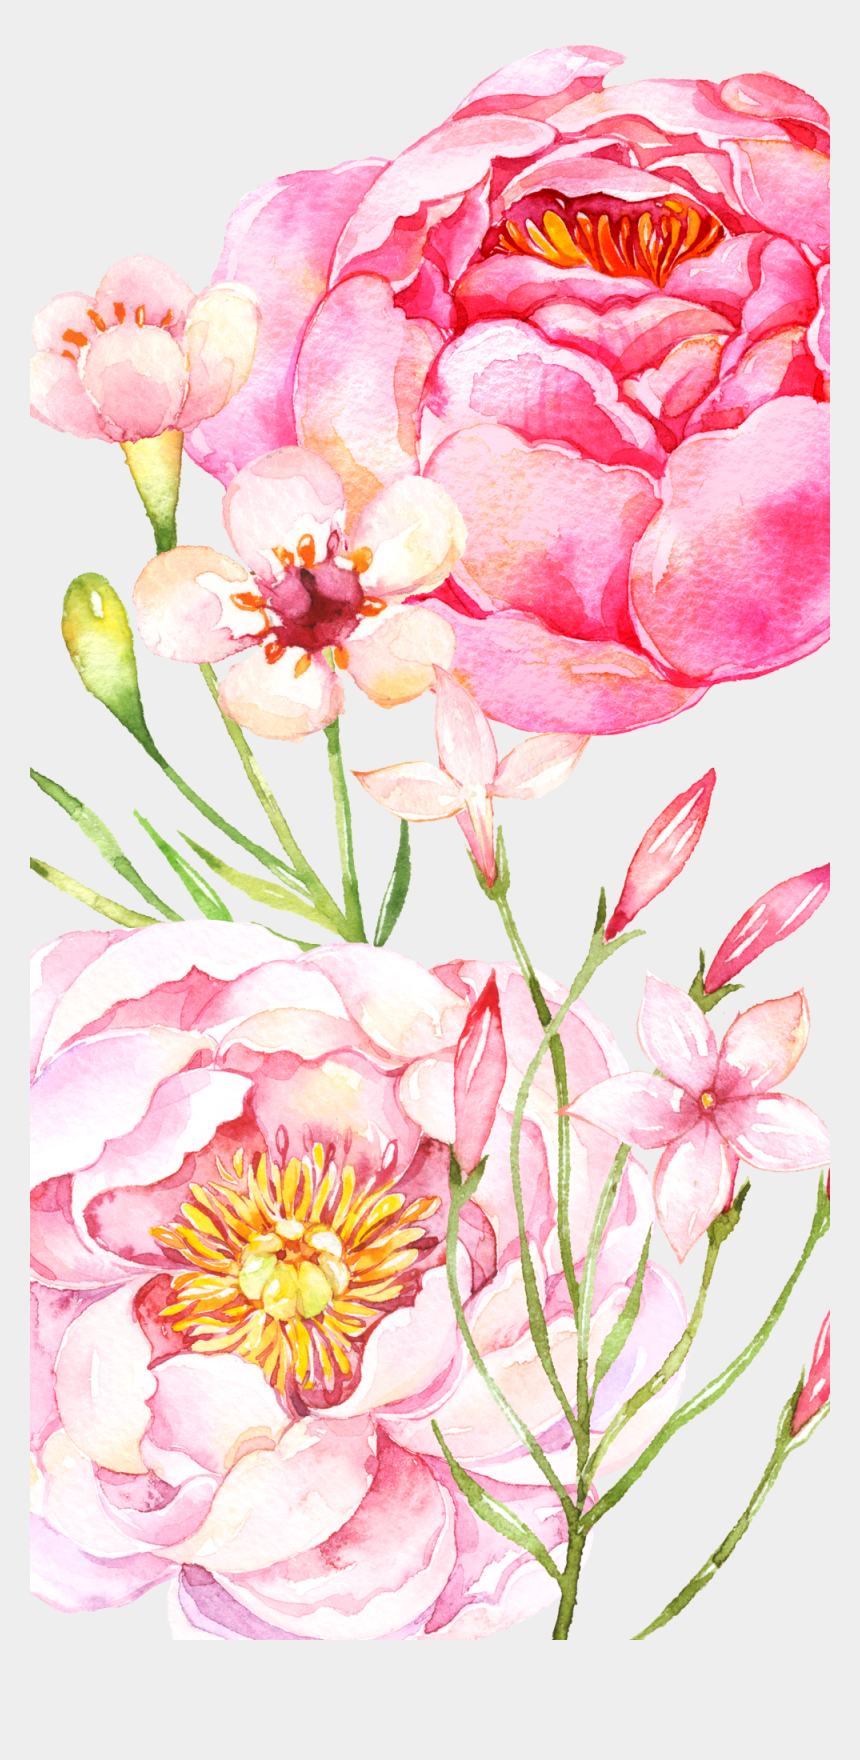 pink peony clipart, Cartoons - #casetify #iphone #art #design #flowers #floral - Common Peony